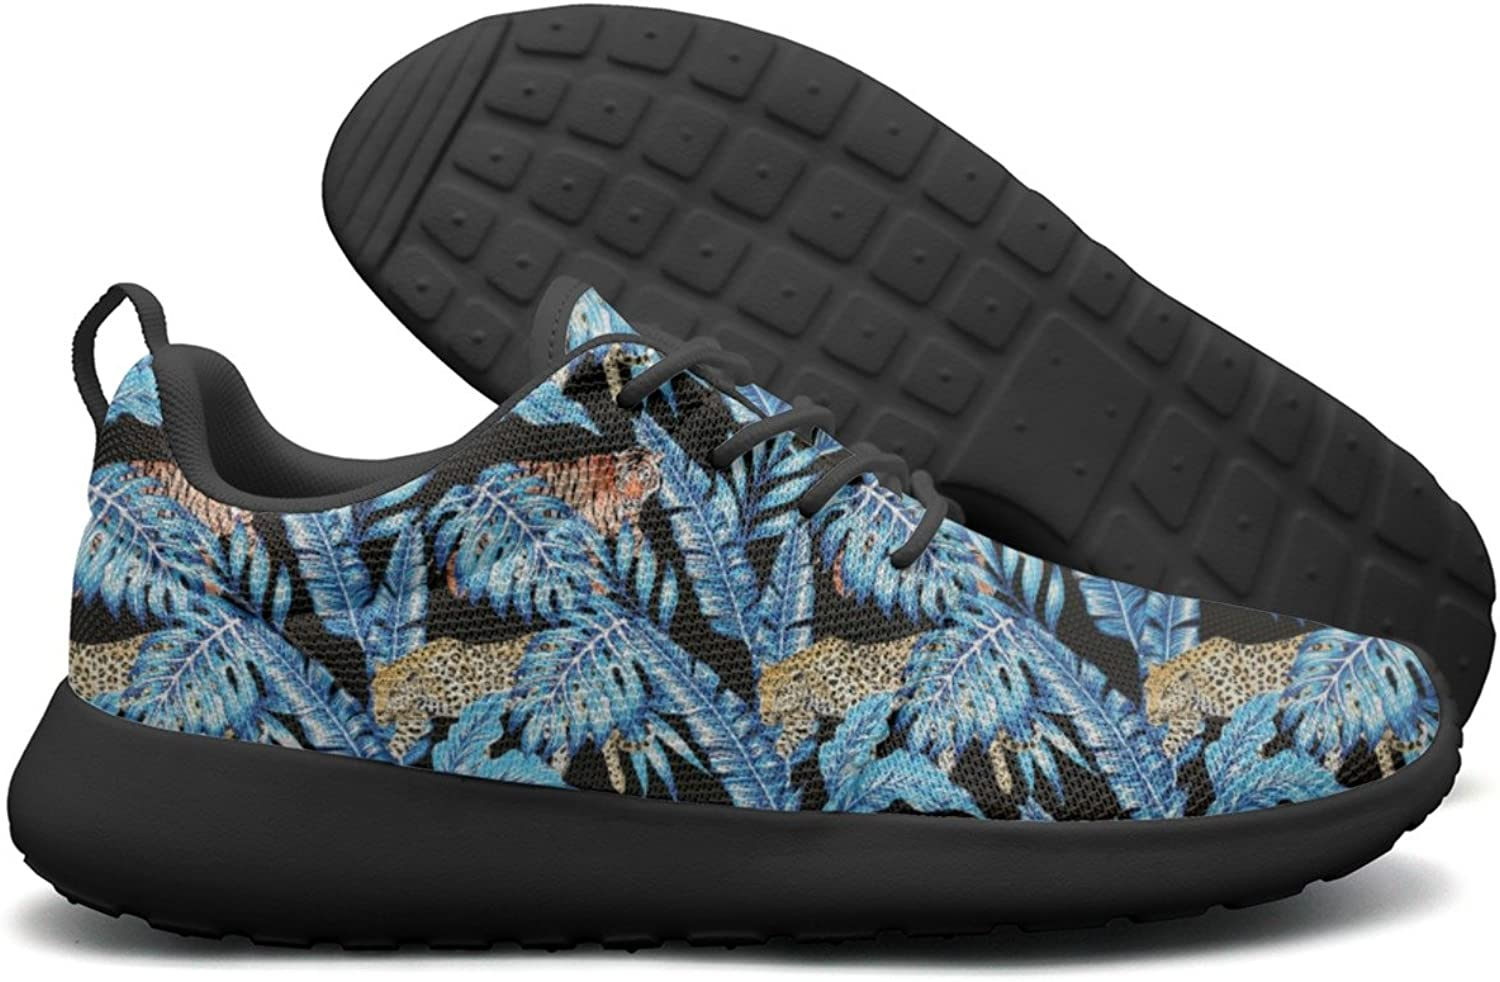 Plants Hawaii Summer Palm Leaves With Tiger Man Neutral Casual Running shoes Jogger colorful